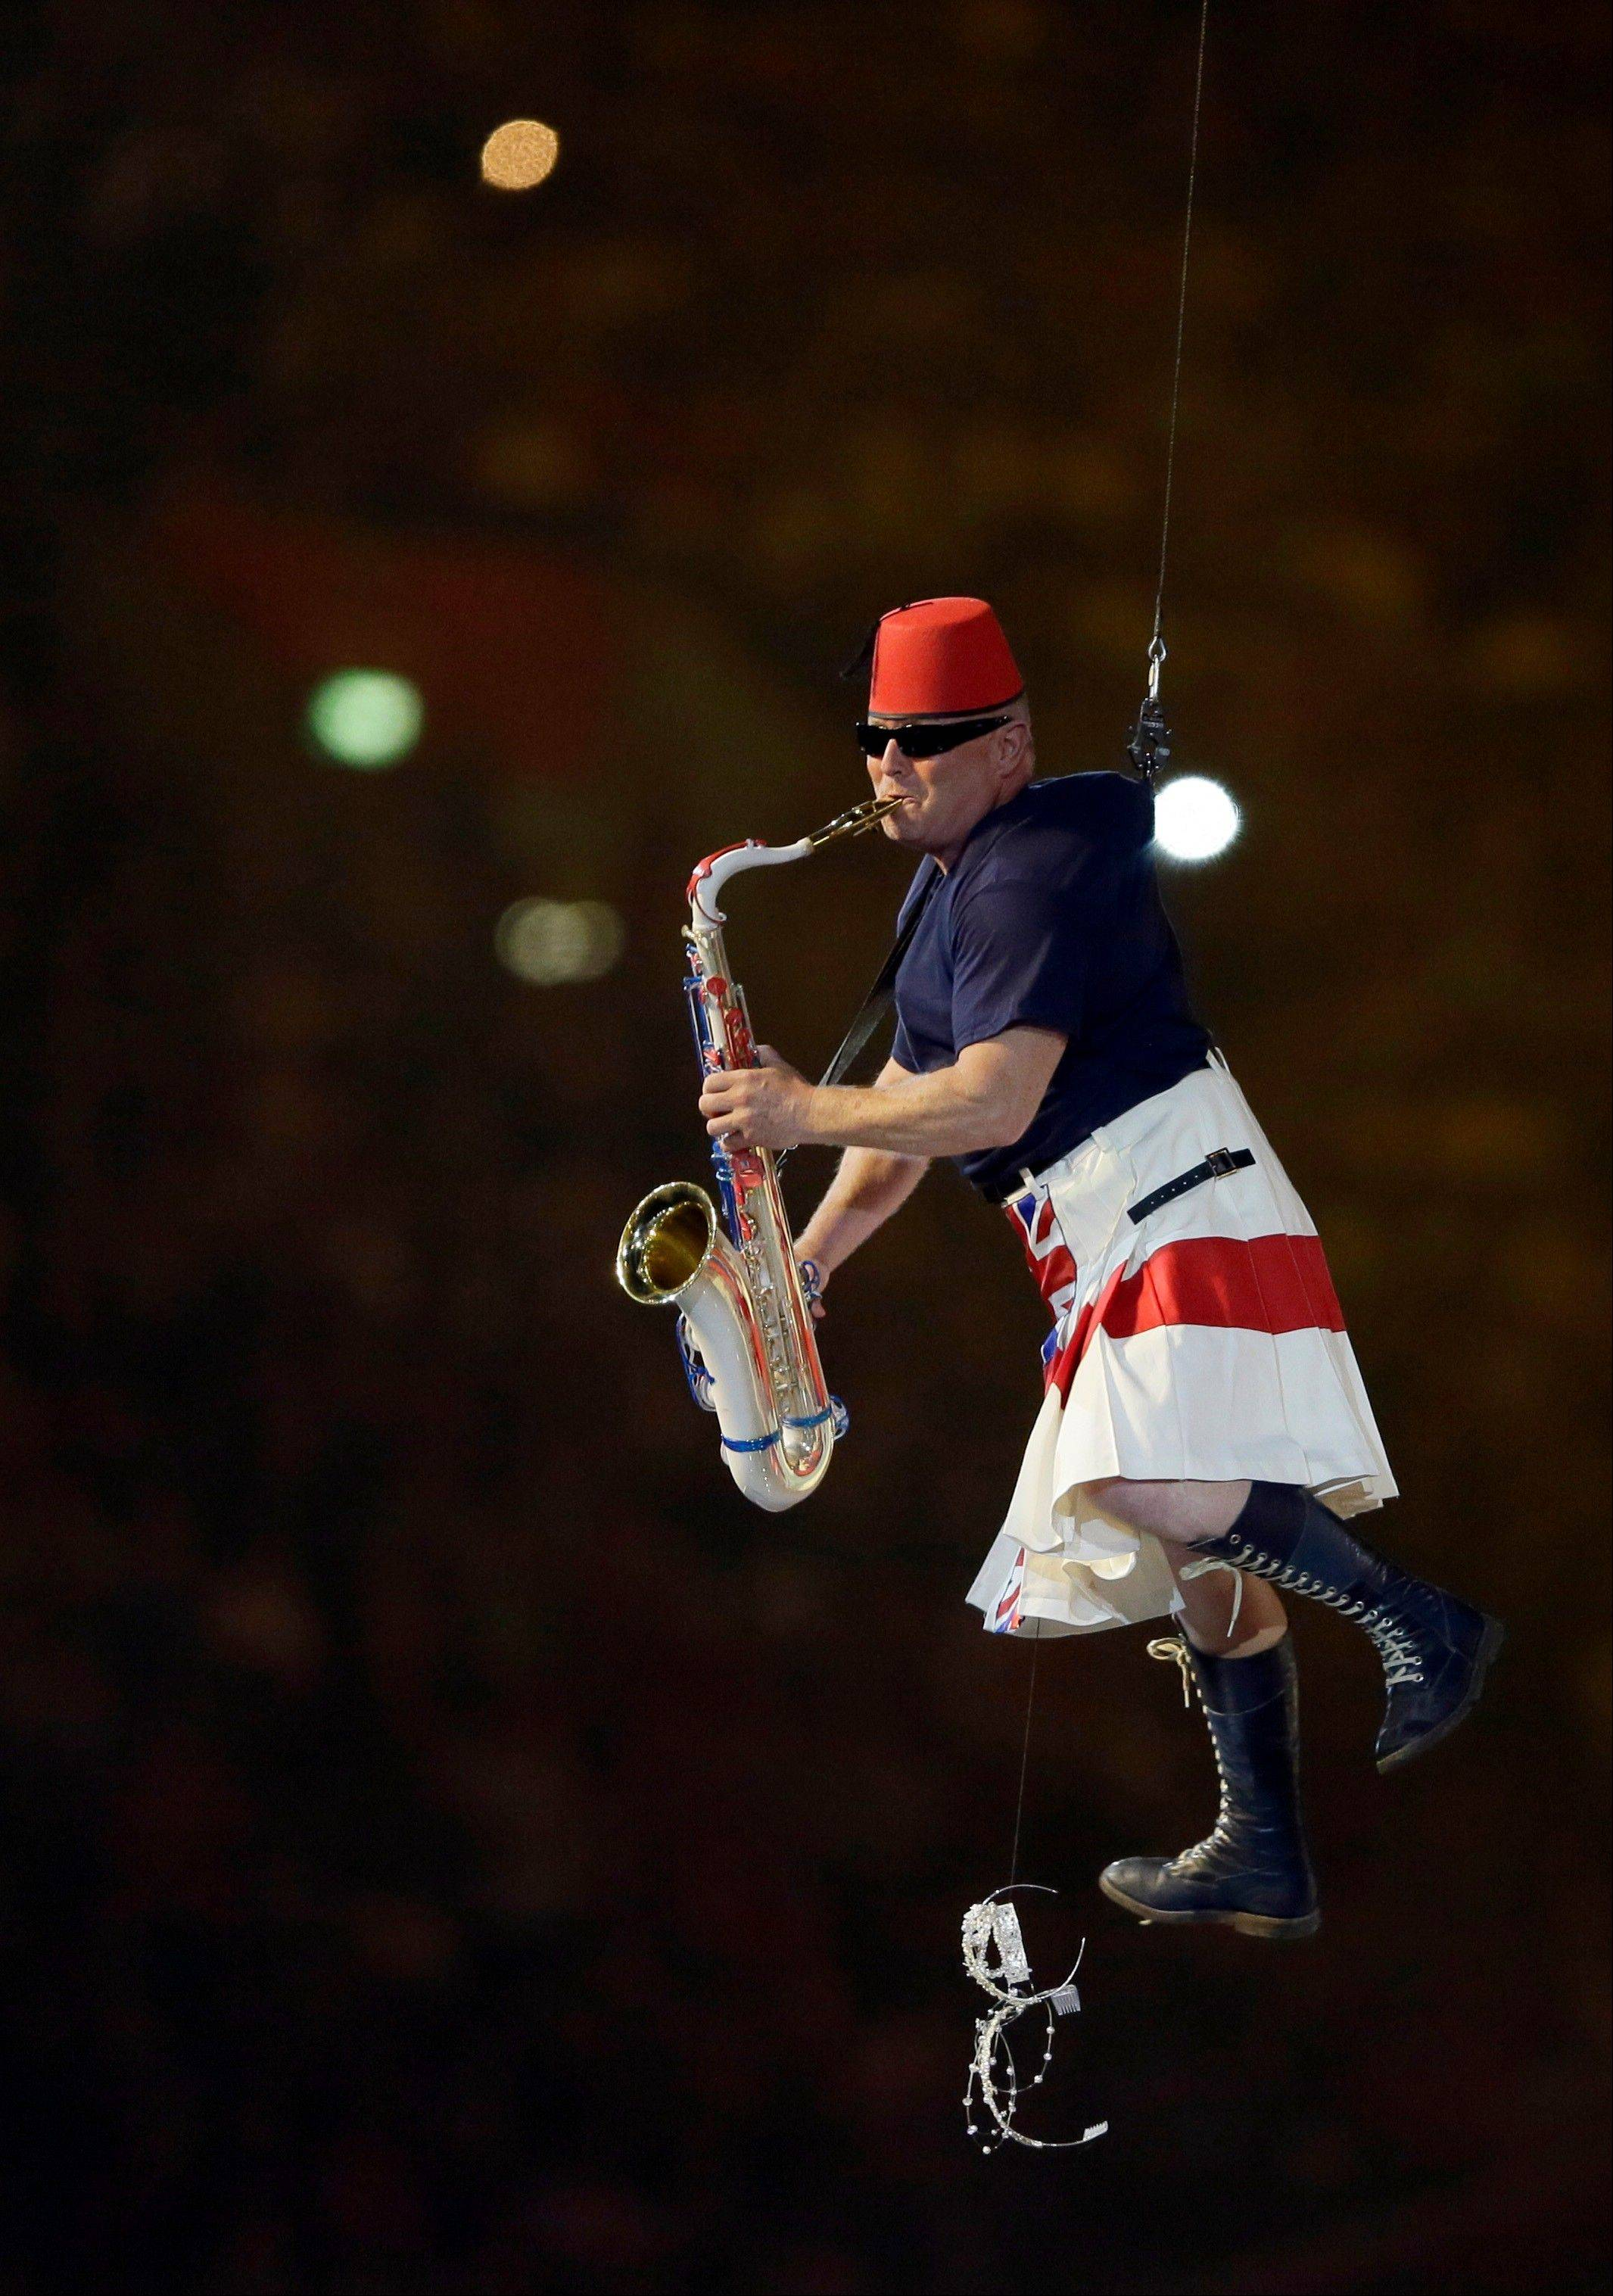 An artist performs during the Closing Ceremony at the 2012 Summer Olympics.